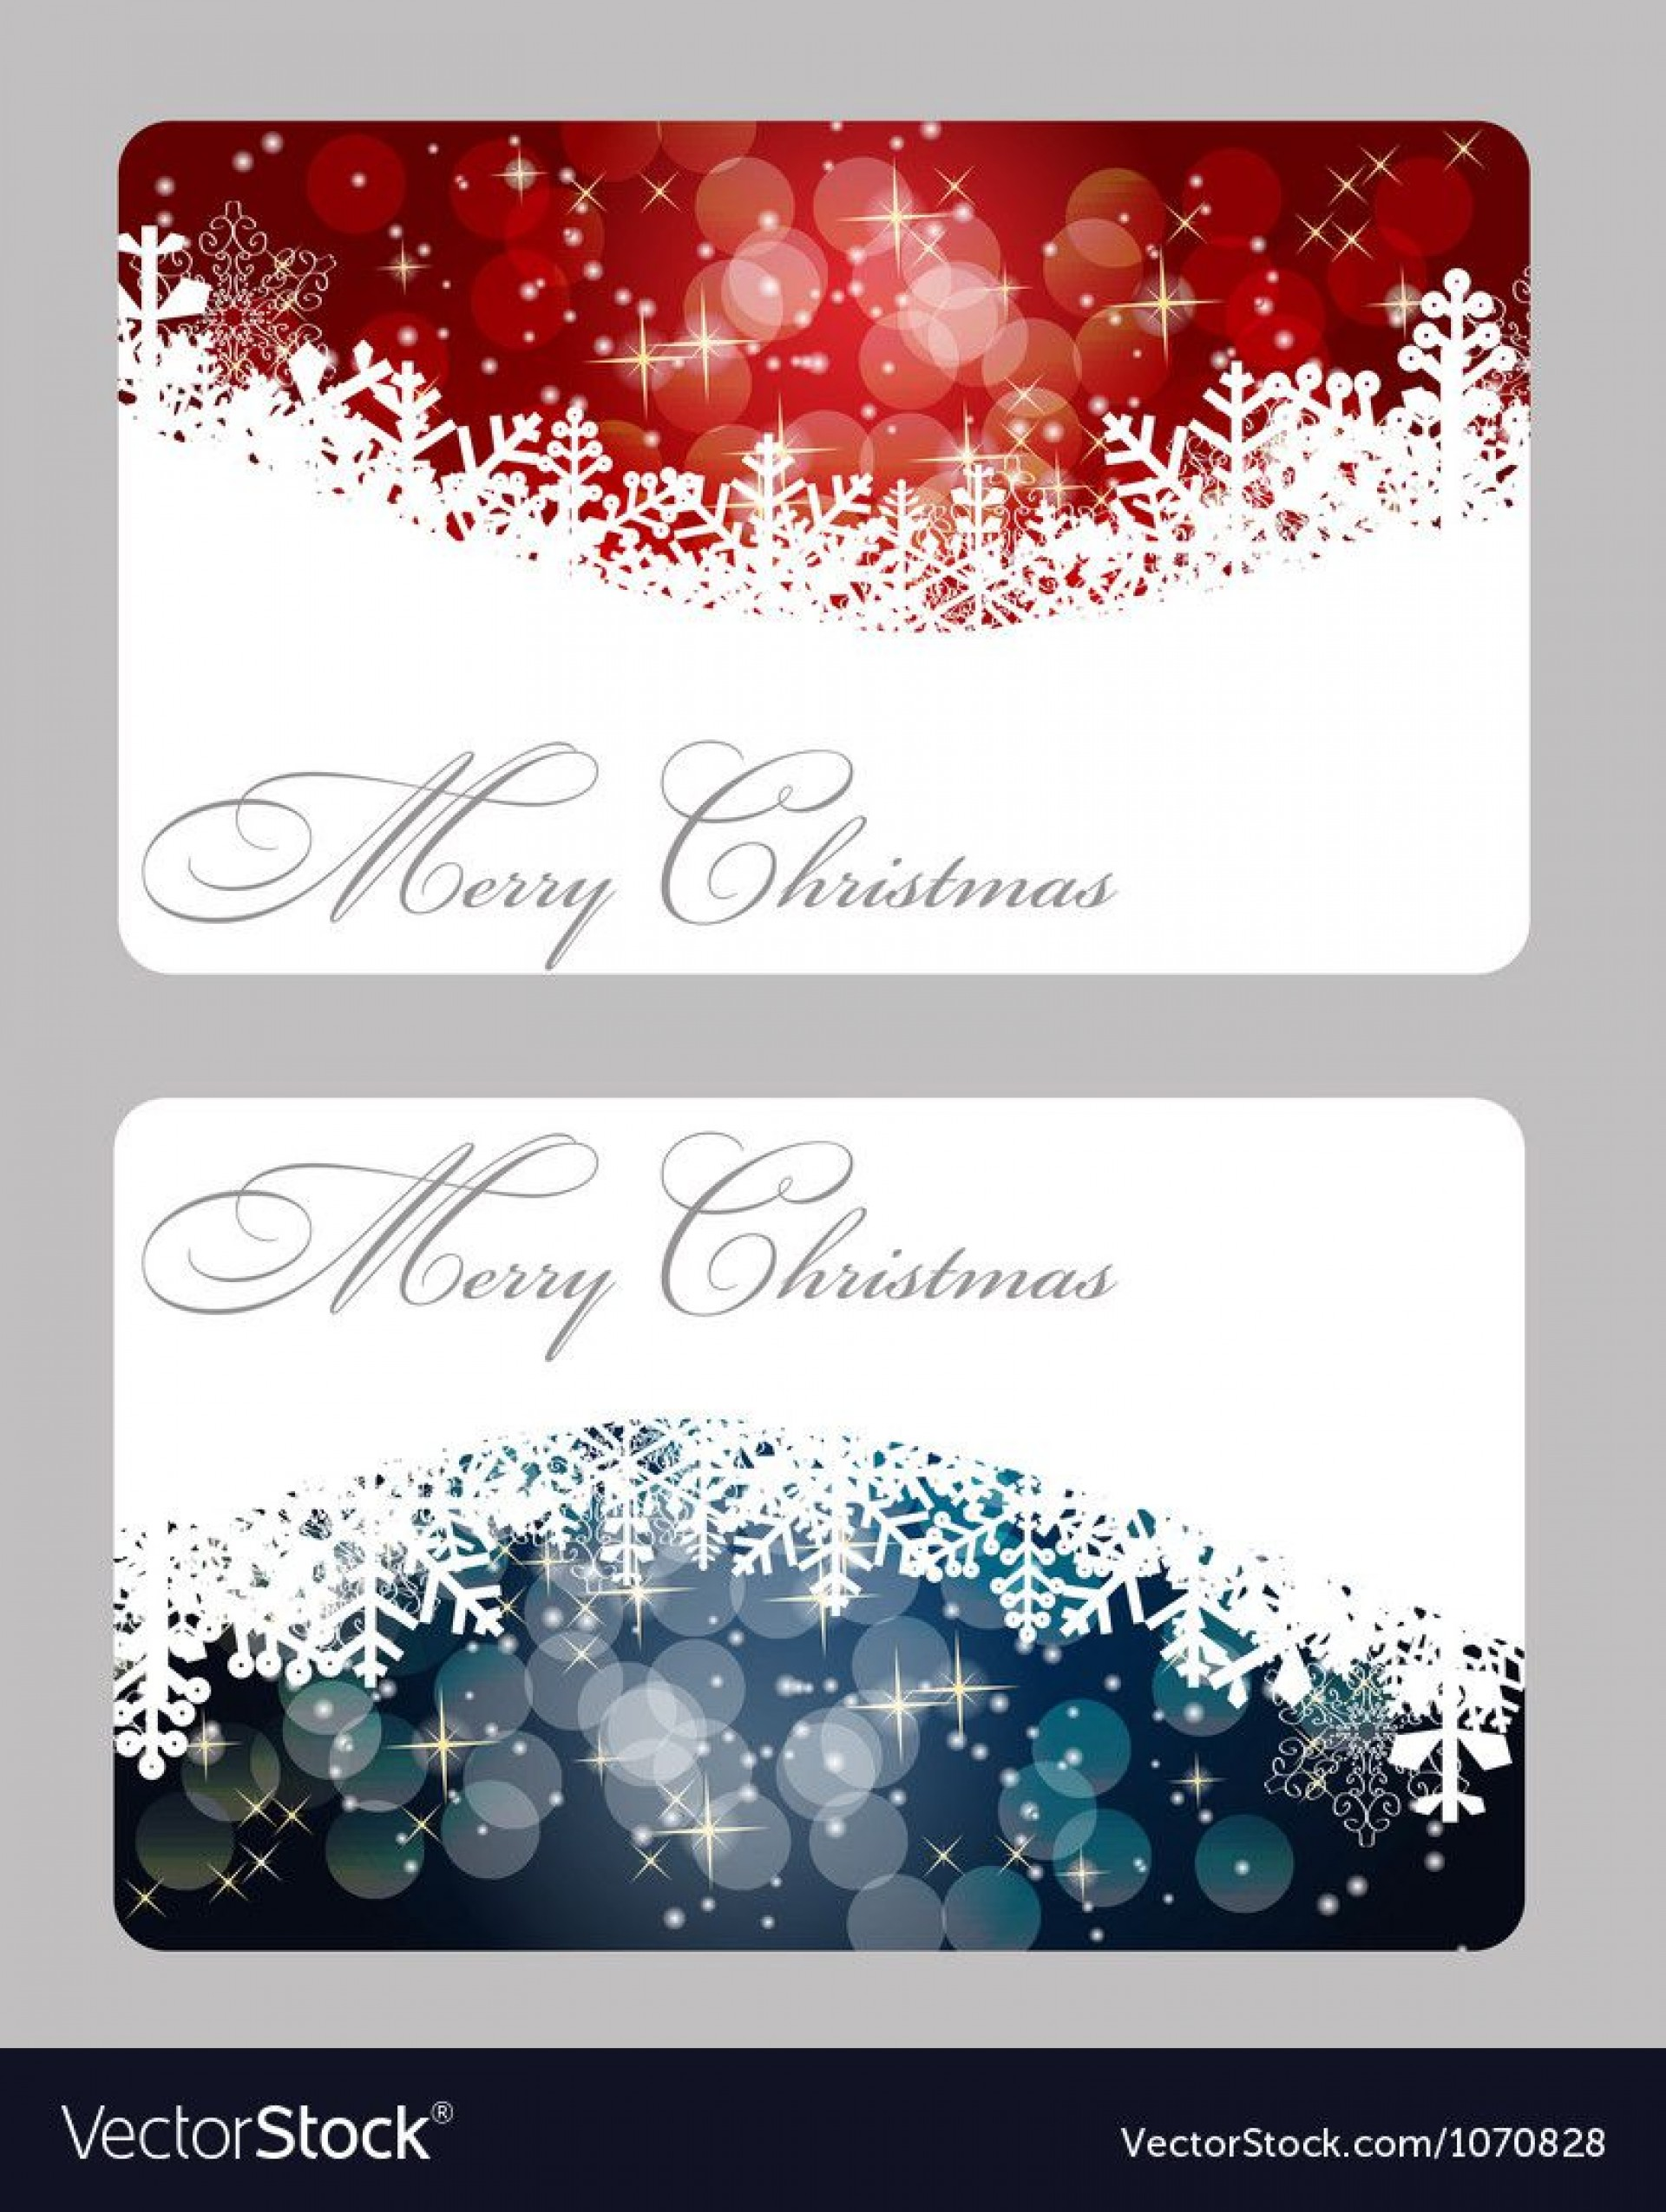 009 Dreaded Christma Card Template Free Download Idea  Downloads Photoshop Photo Editable1920